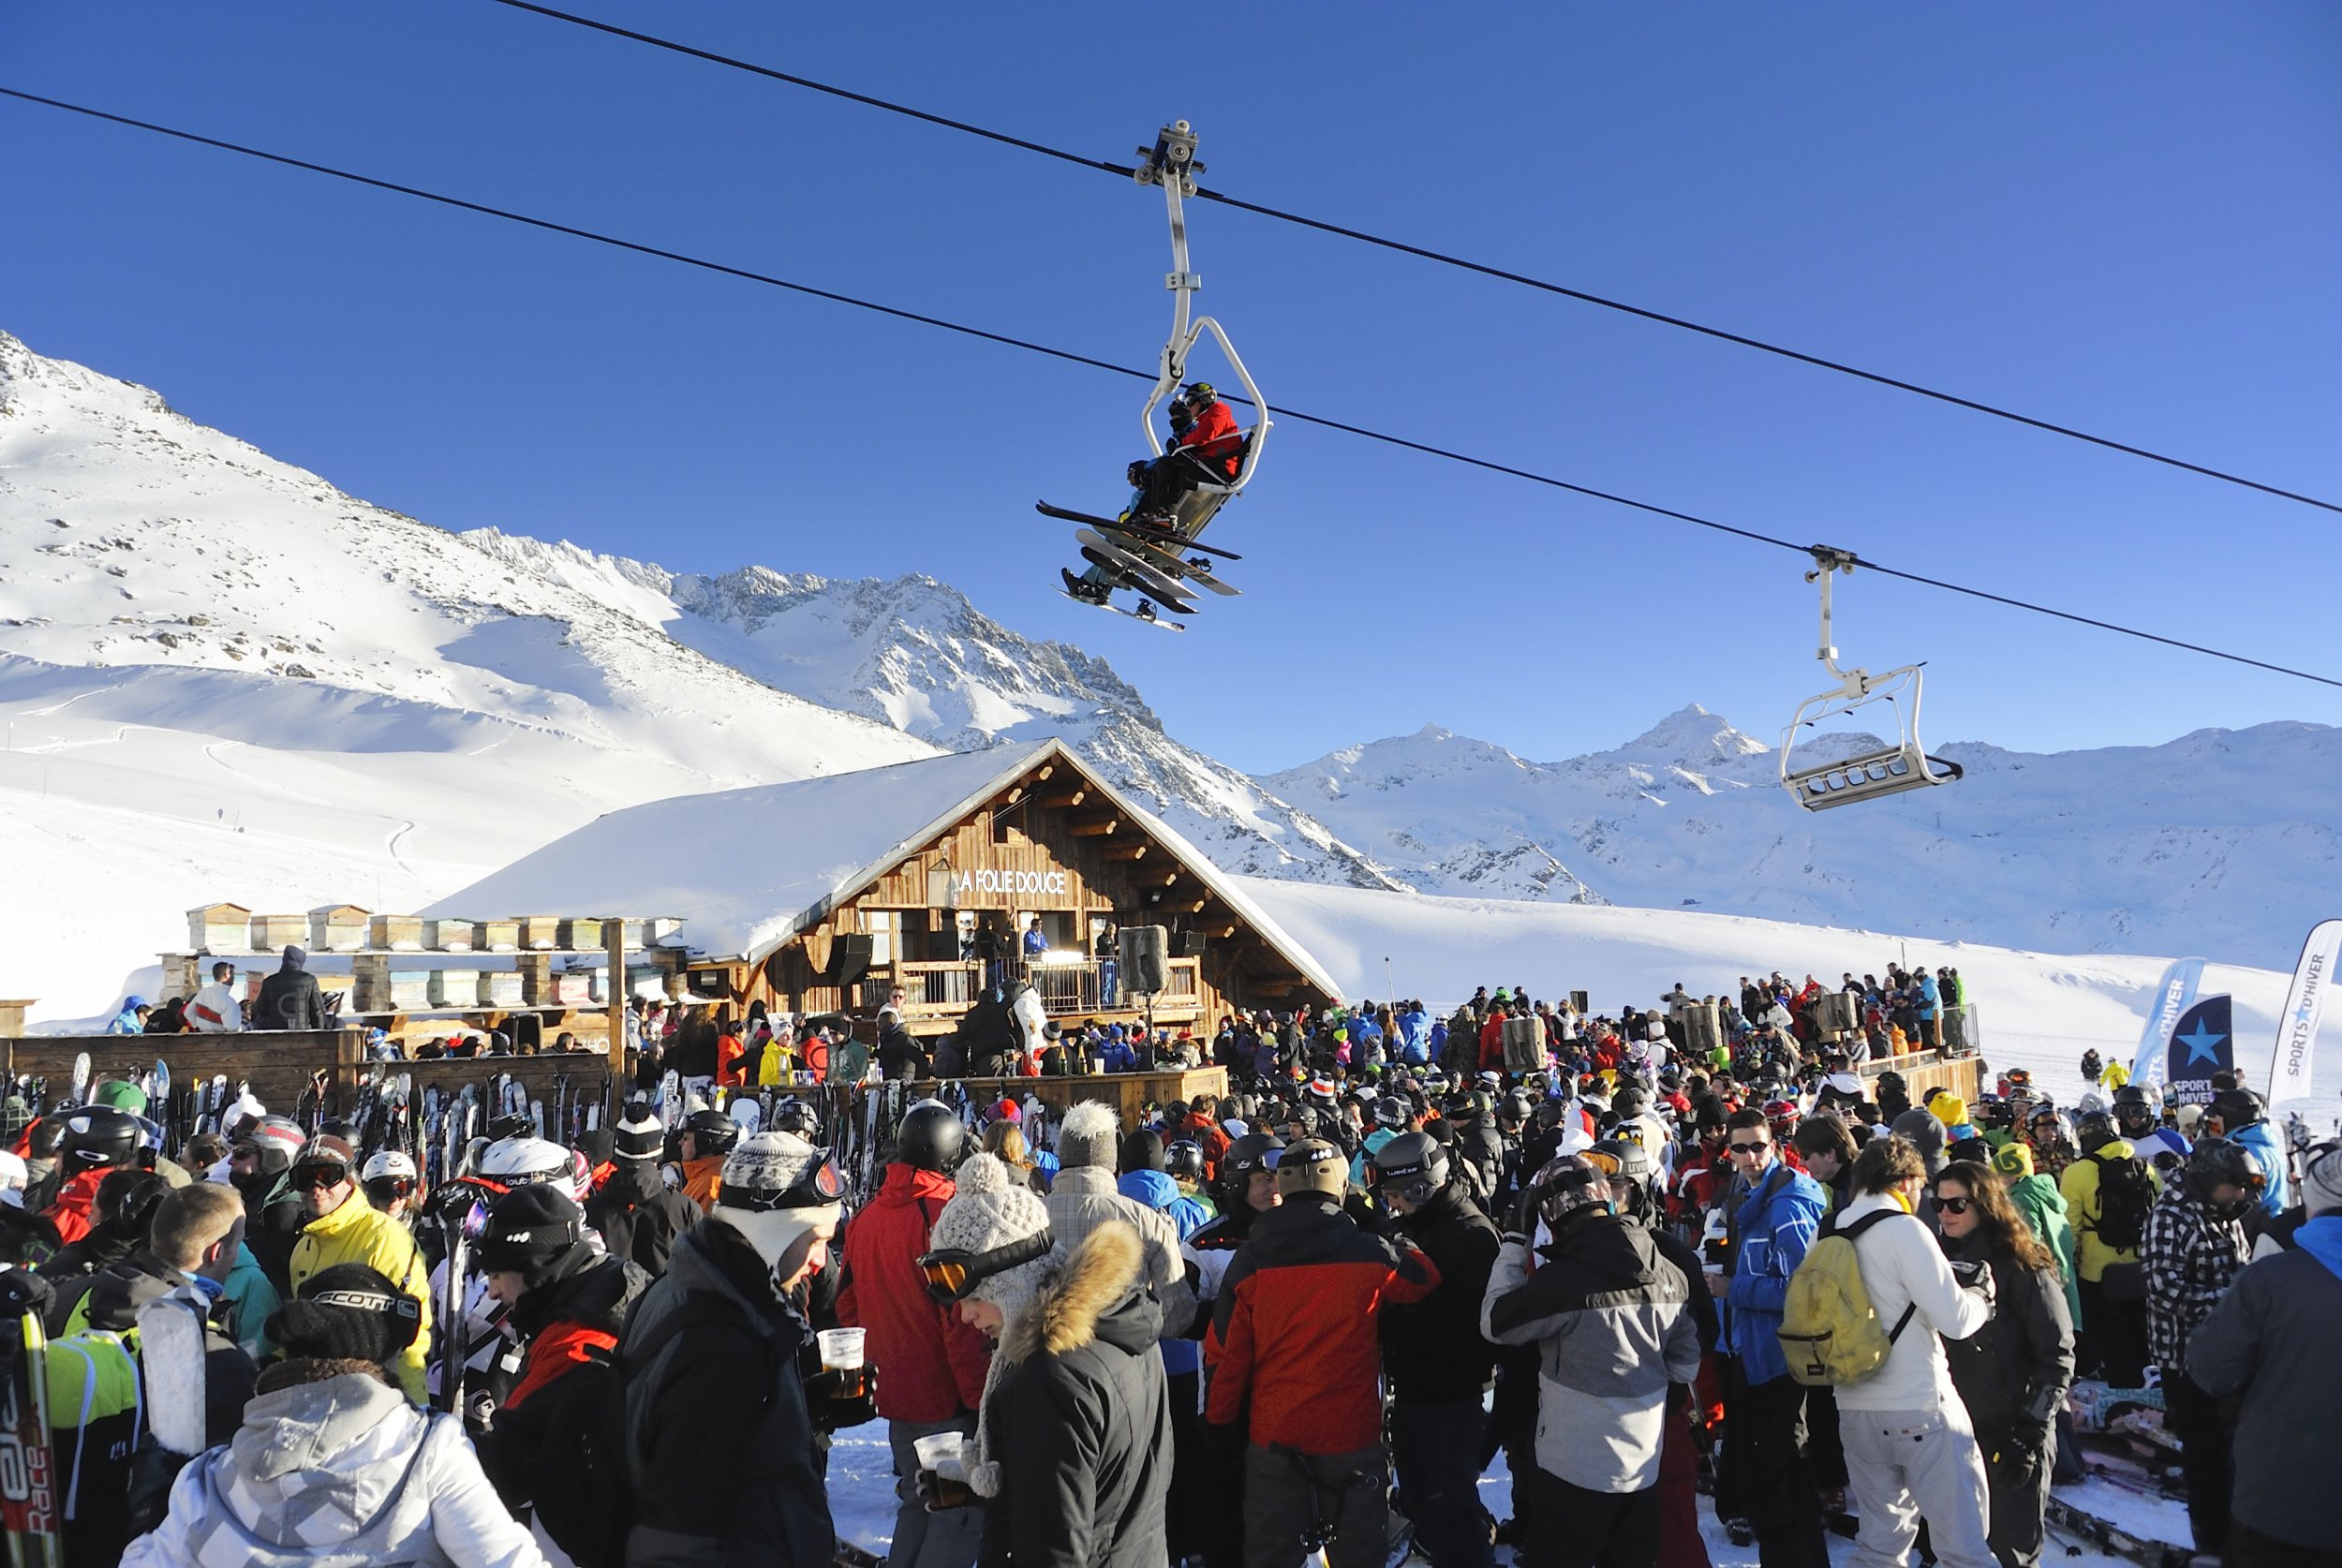 Val Thorens is a well-known party resort for skiiers (Picture: Sjoerd van der Wal/Getty)